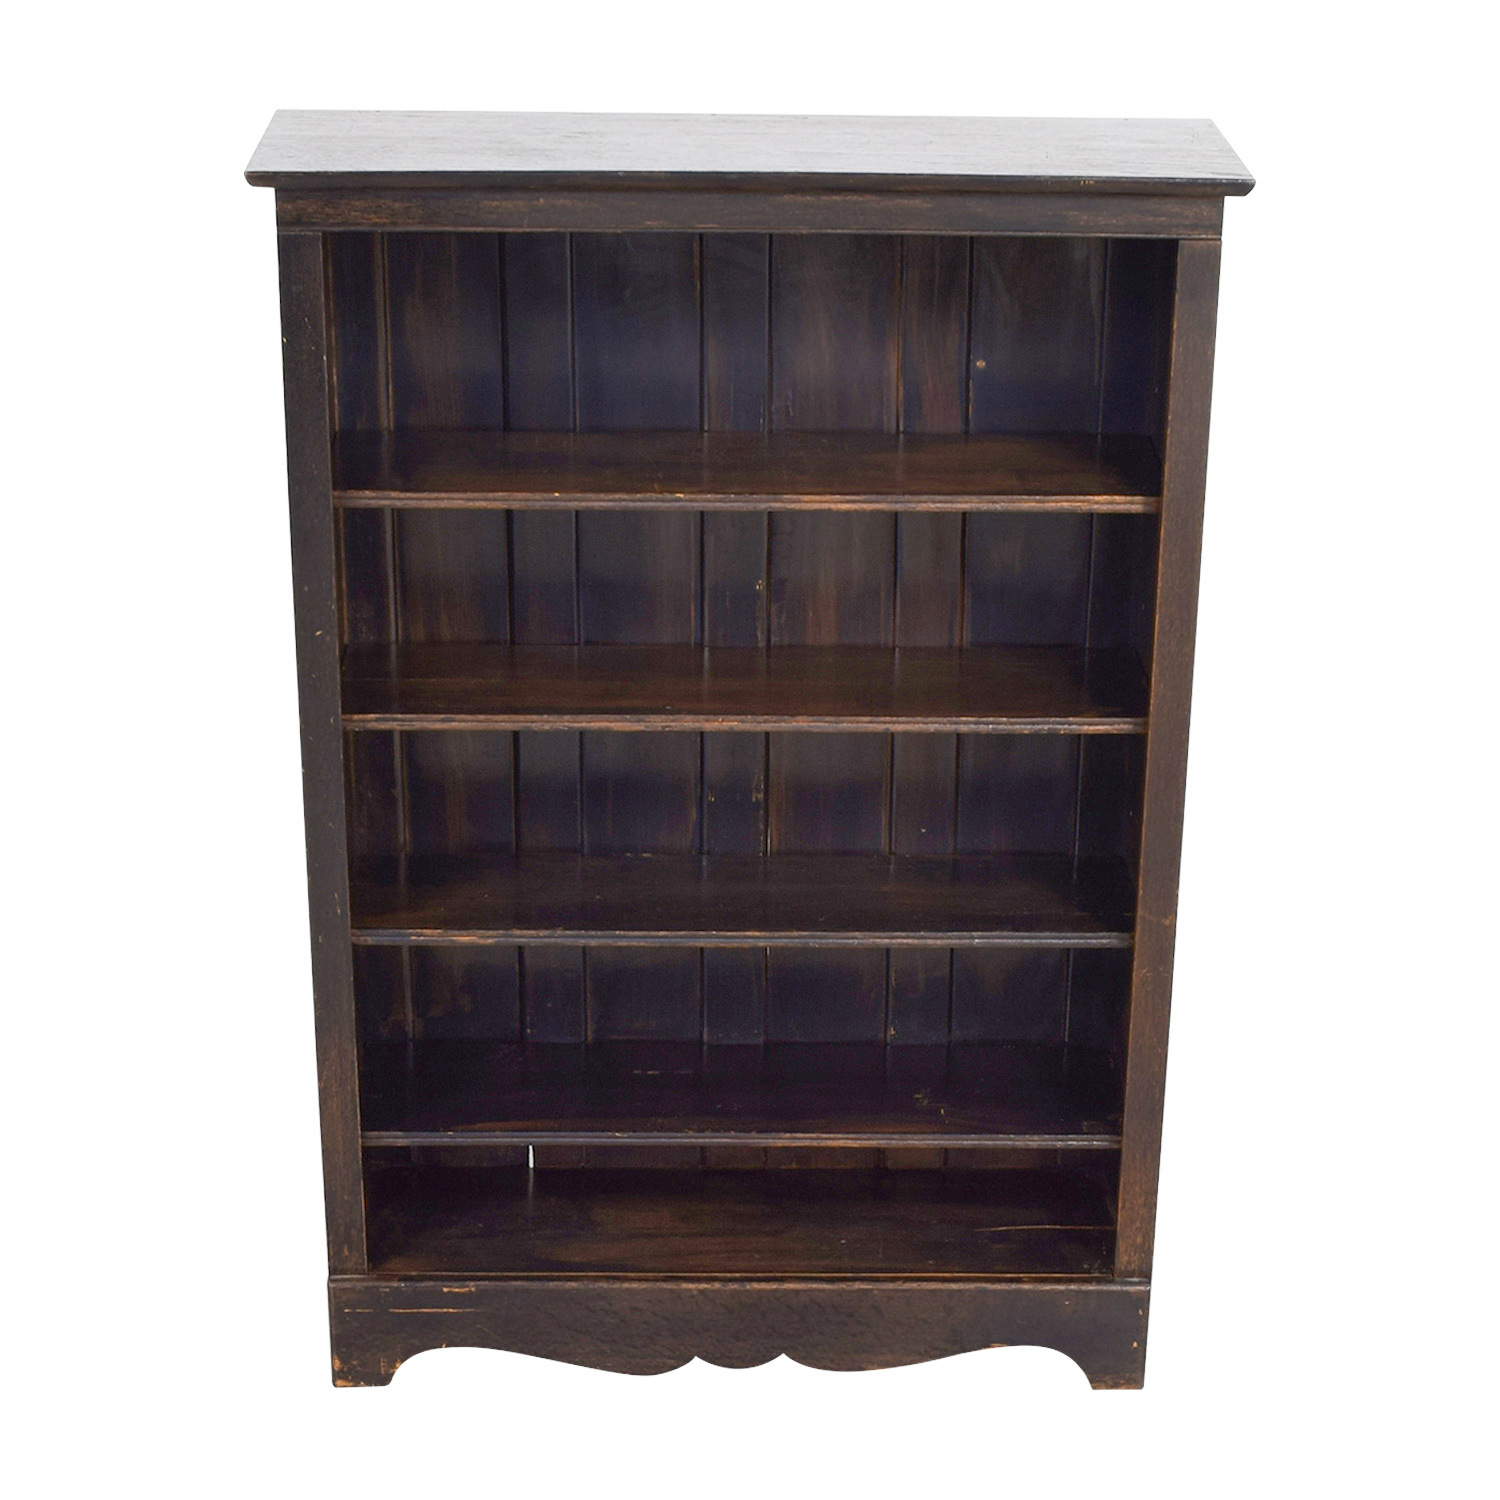 s factory eta furniture antique bookcase bradley bookcases ship rustic quick etc wks bookshelves